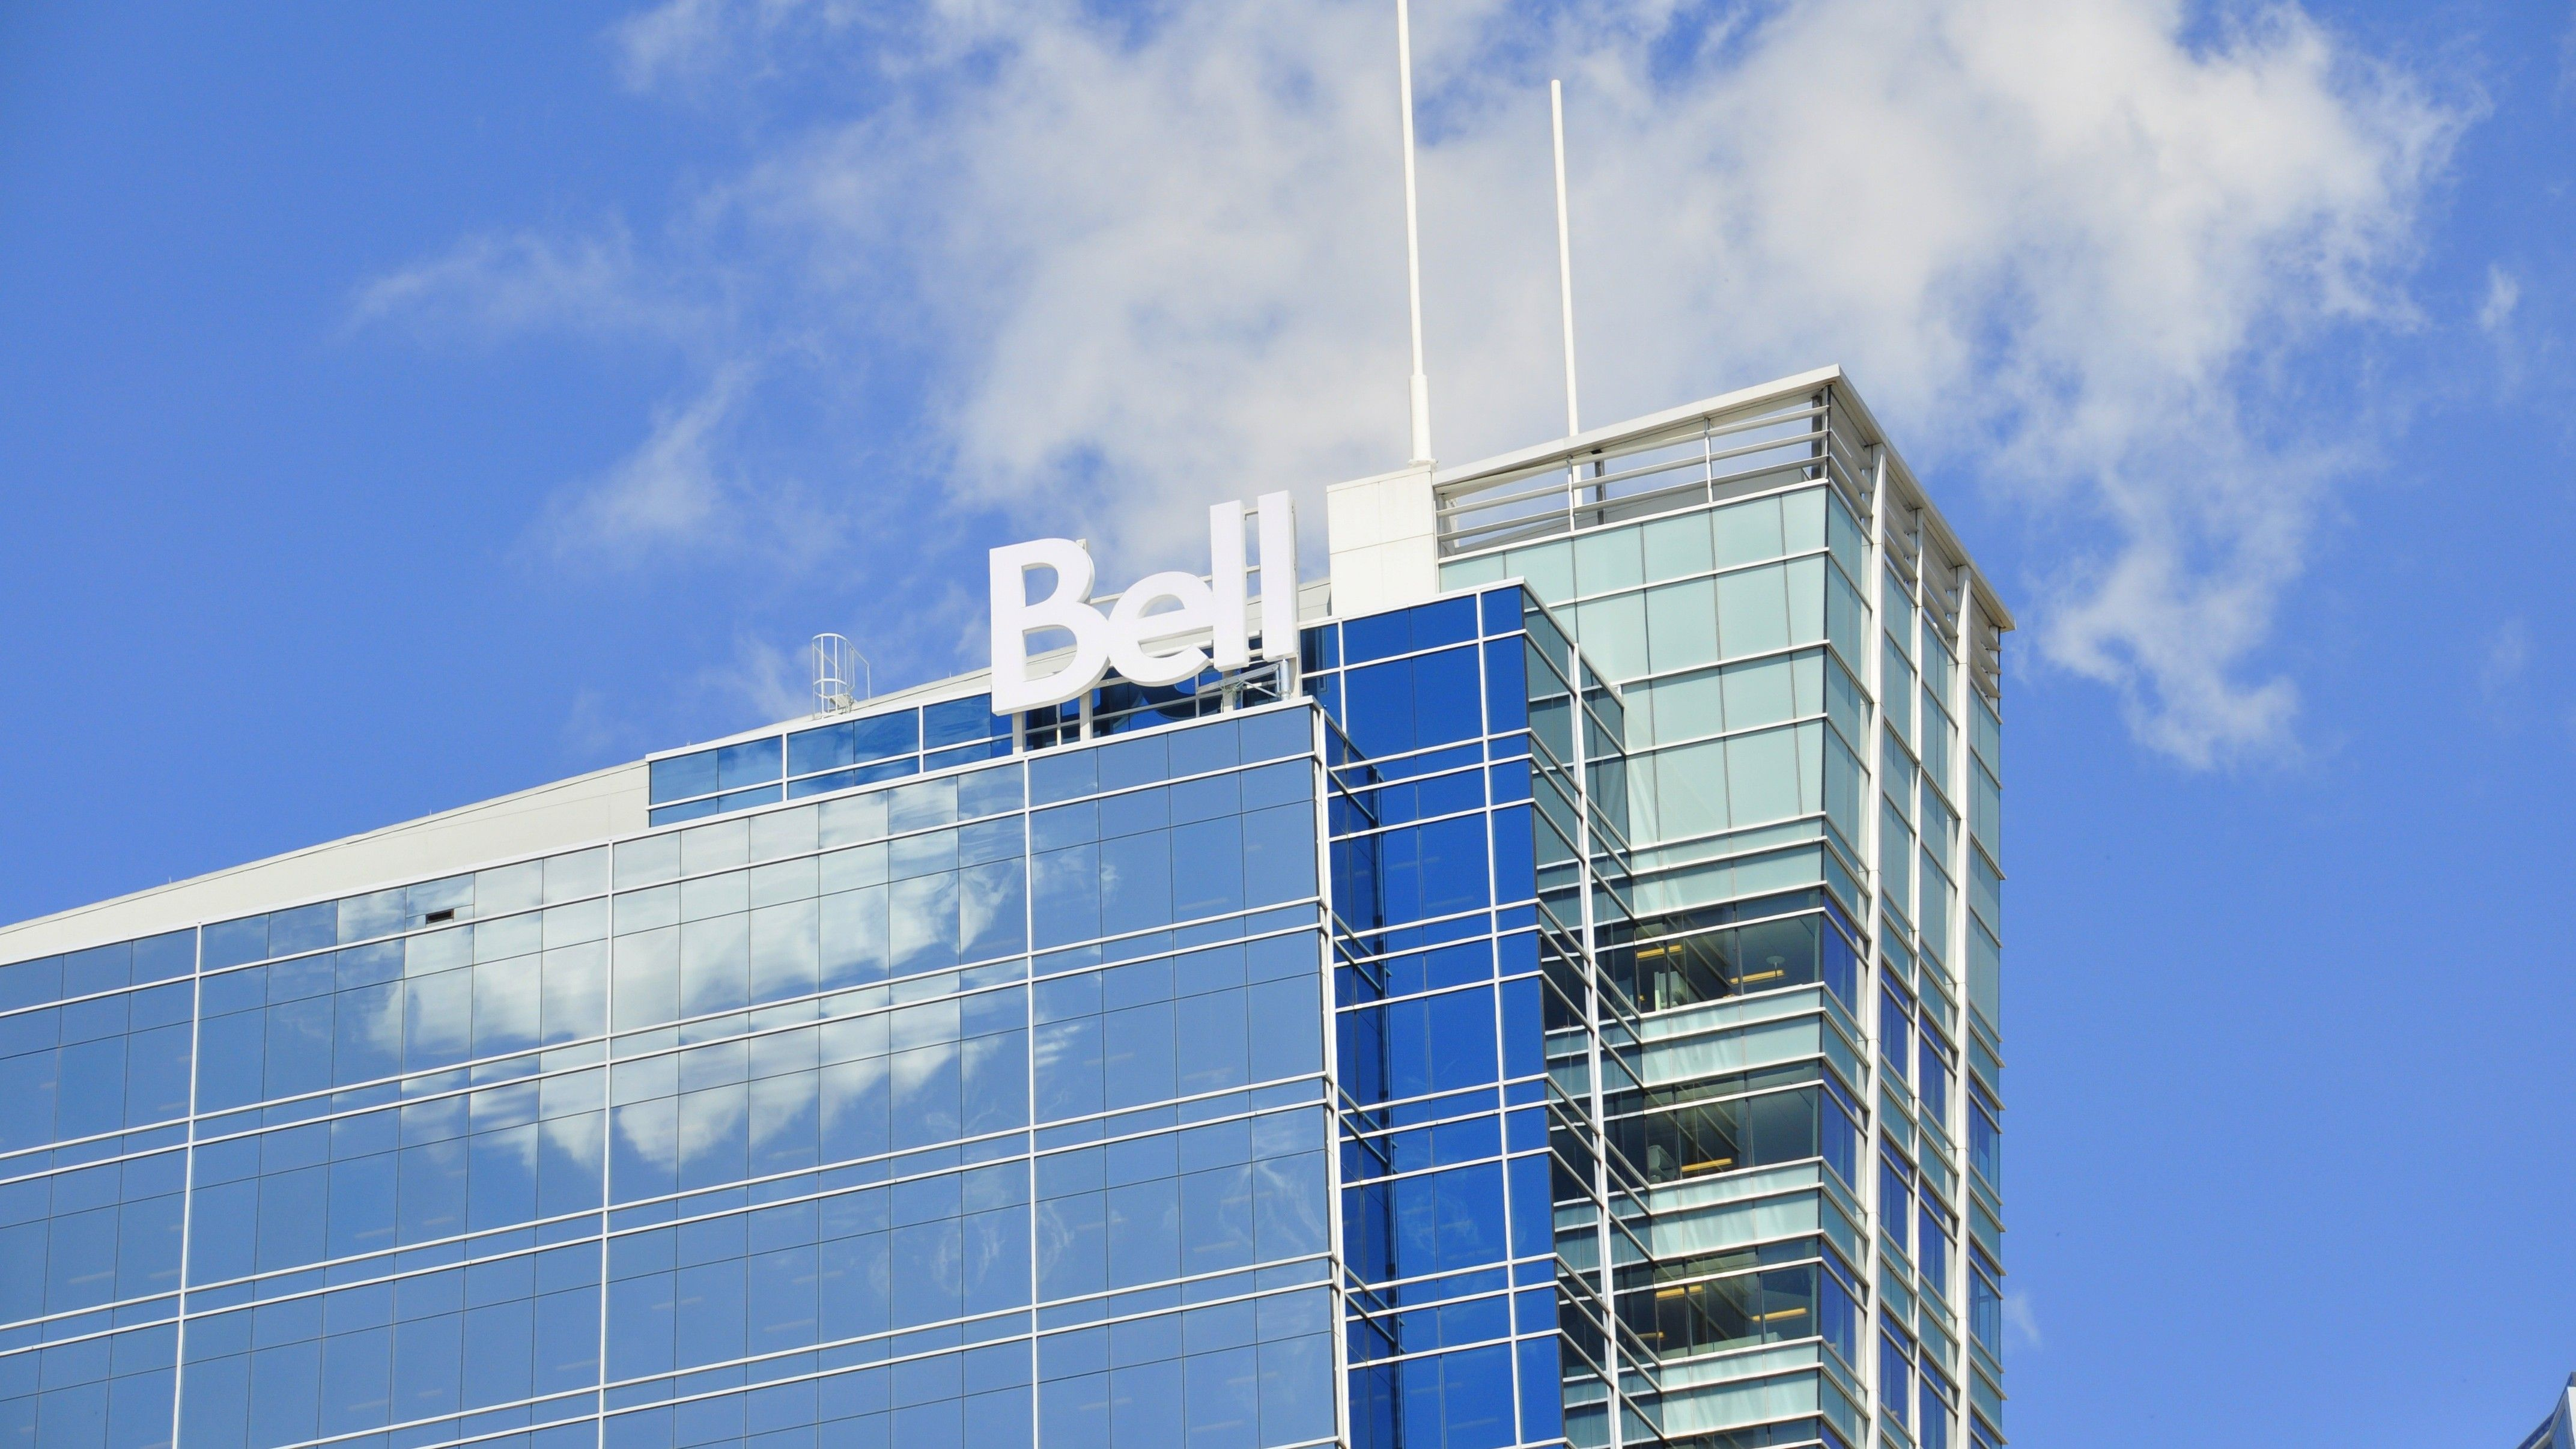 Canadian Giant Bell Wanted NAFTA to Ban Some VPNs